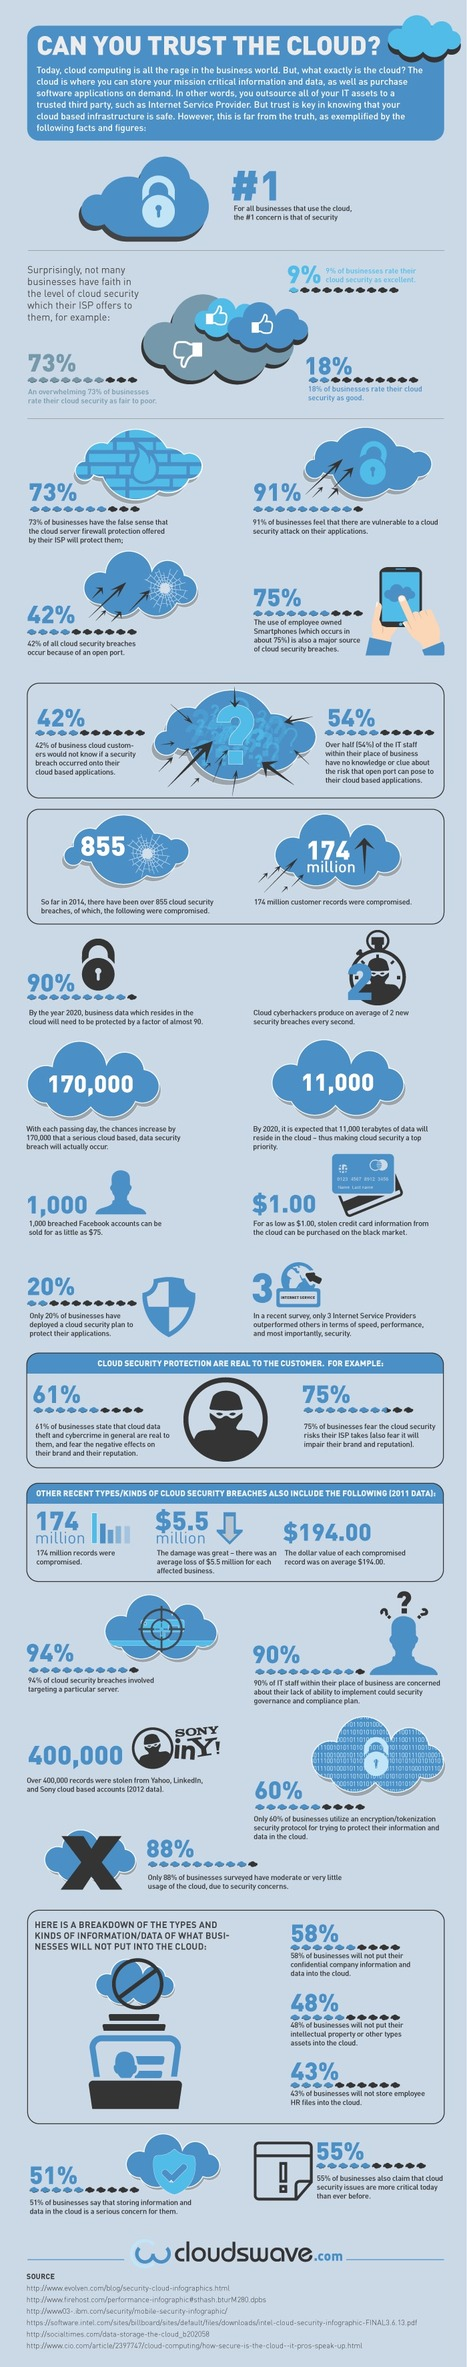 Can You Trust the Cloud? #Infographic | MarketingHits | Scoop.it